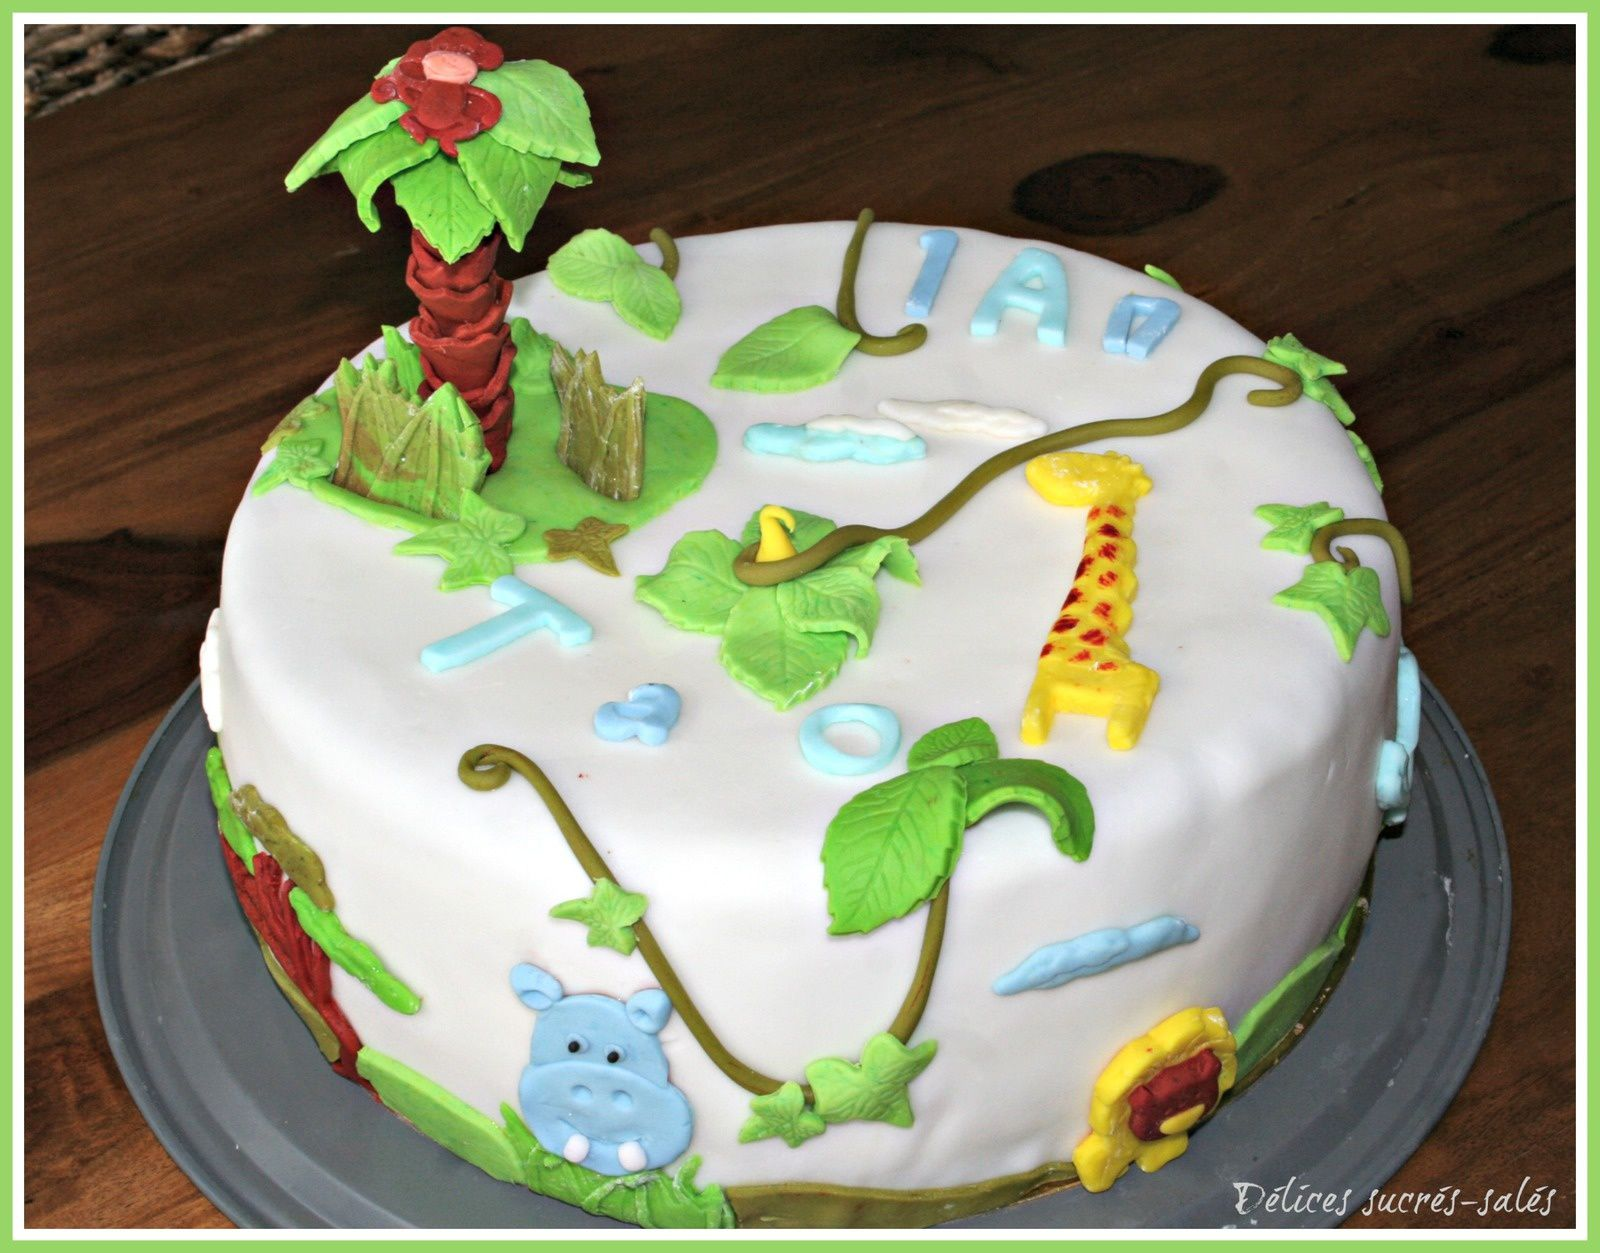 Préférence Gateau jungle - delices-sucres-sales.over-blog.com WM83